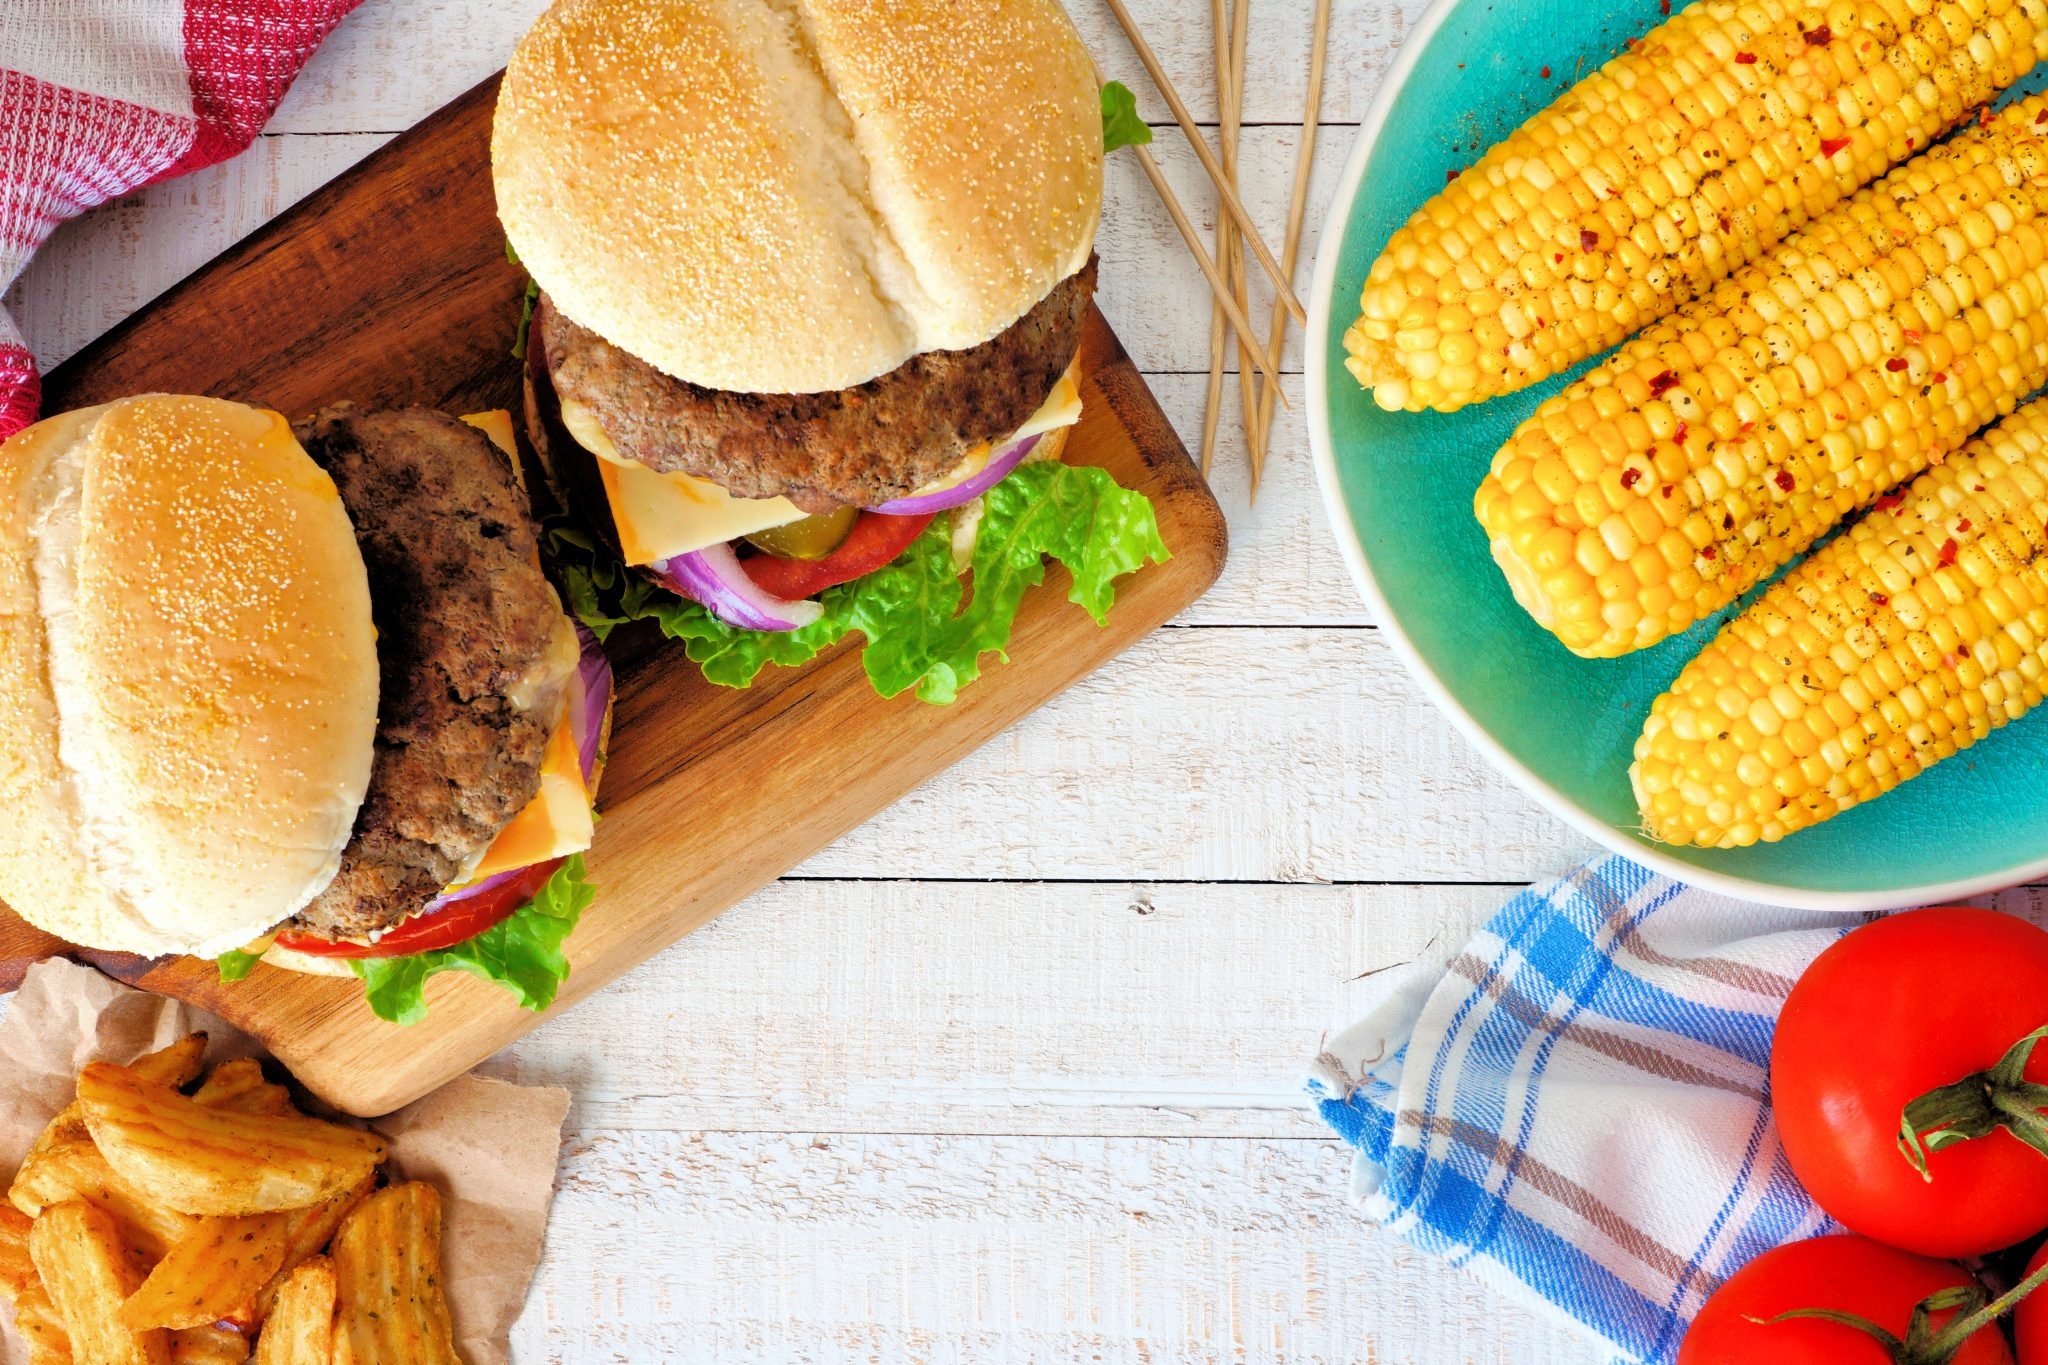 Picnic scene with hamburgers, corn on the cob and potato wedges. Top view over a white wood background.